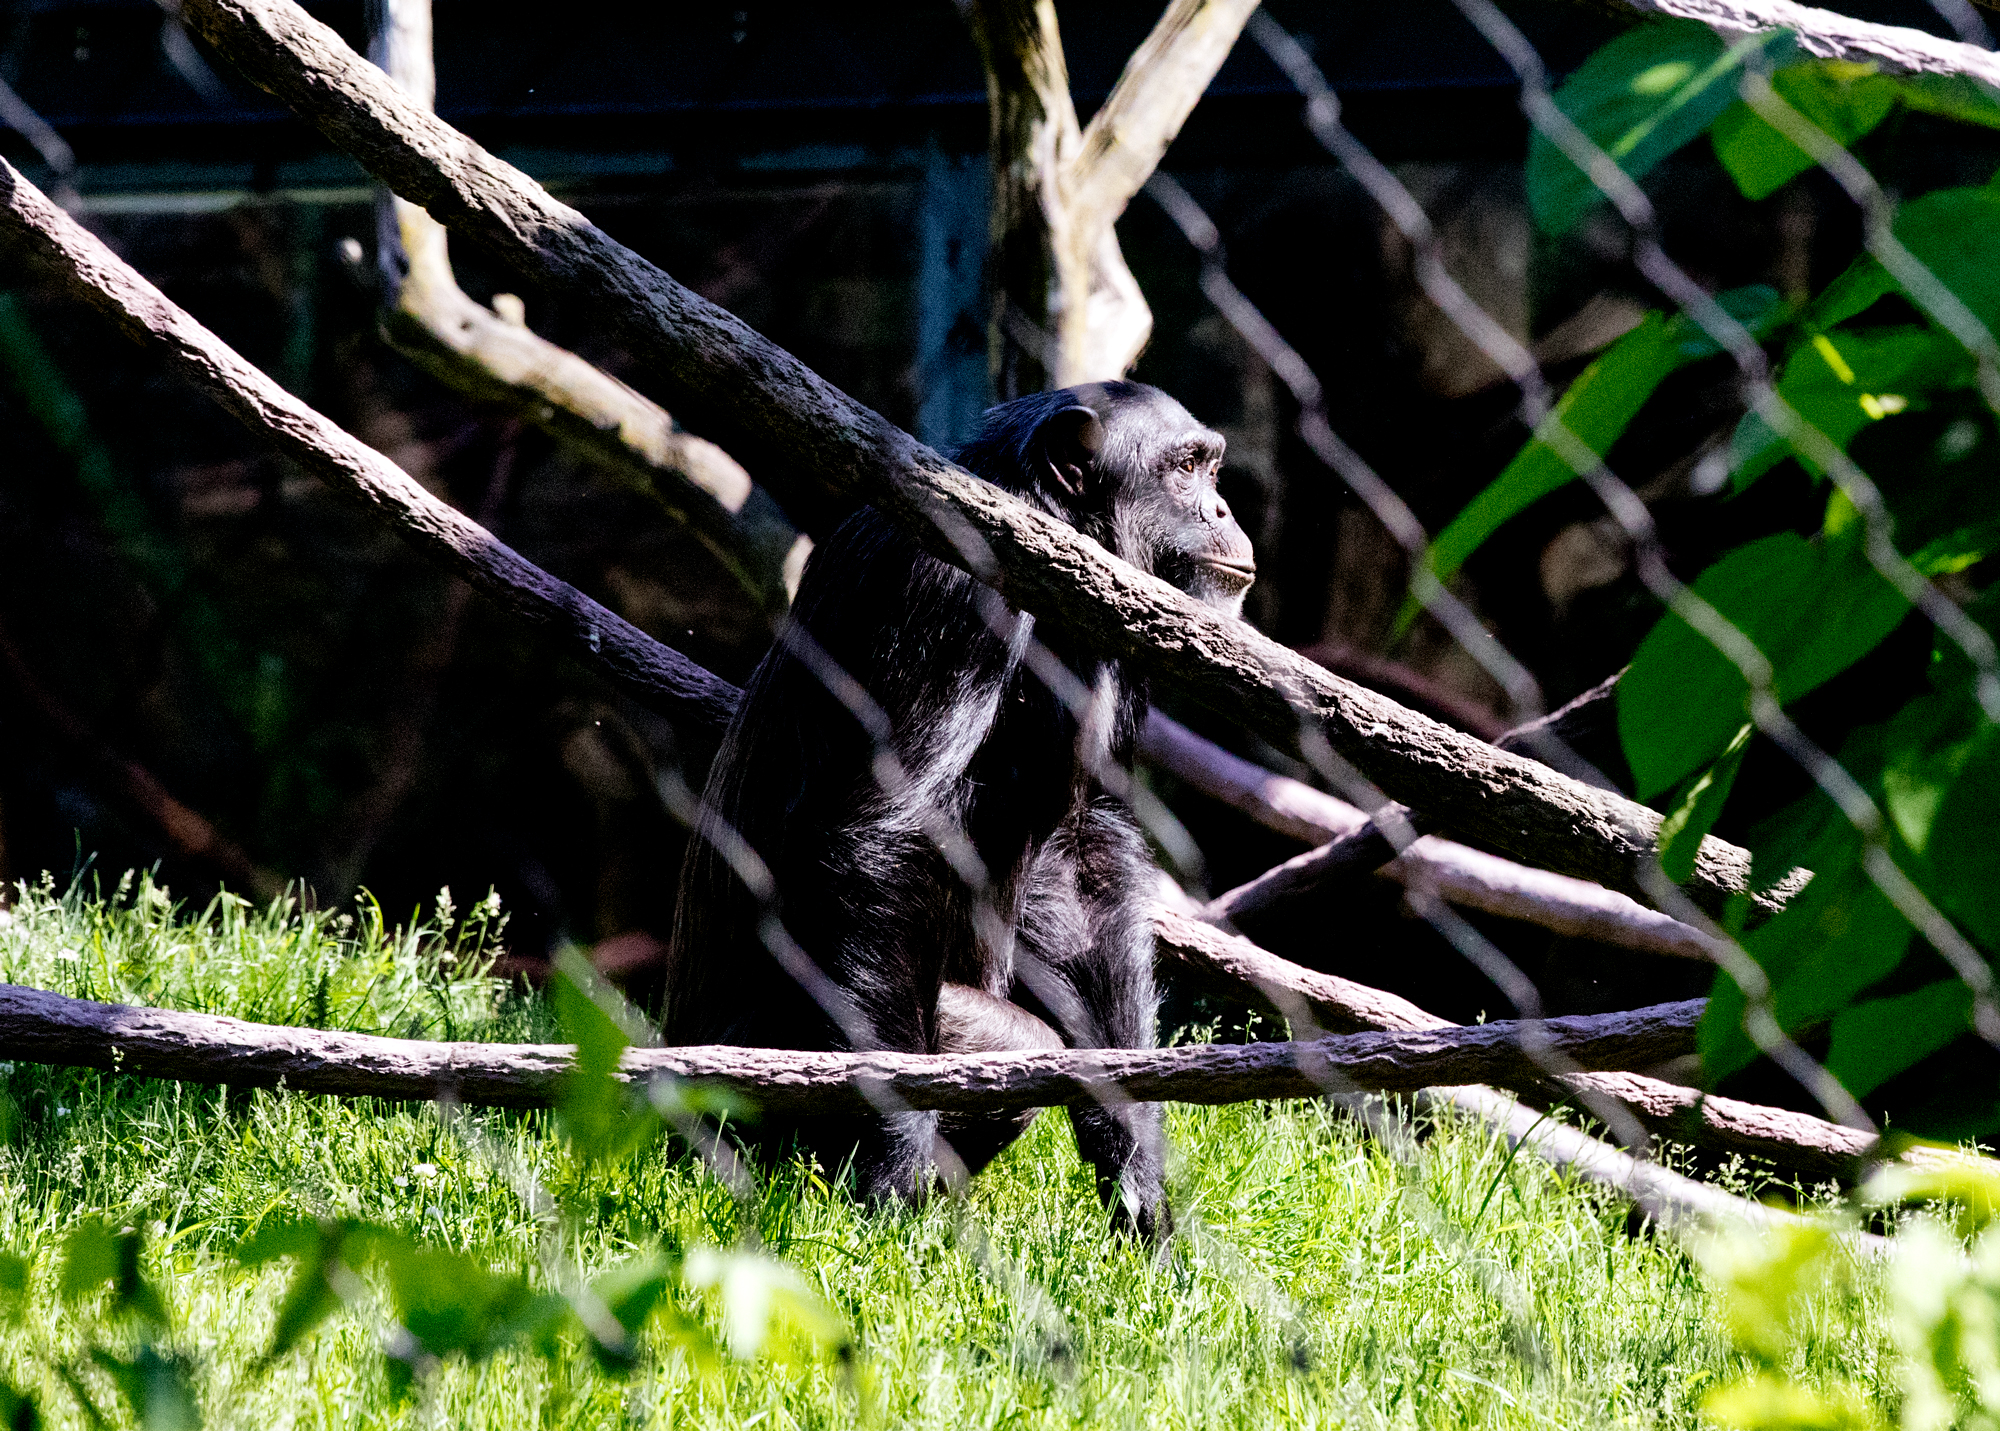 A chimpanzee at the Lincoln Park Zoo on June 9, 2017. (Andrew Gill/WBEZ)